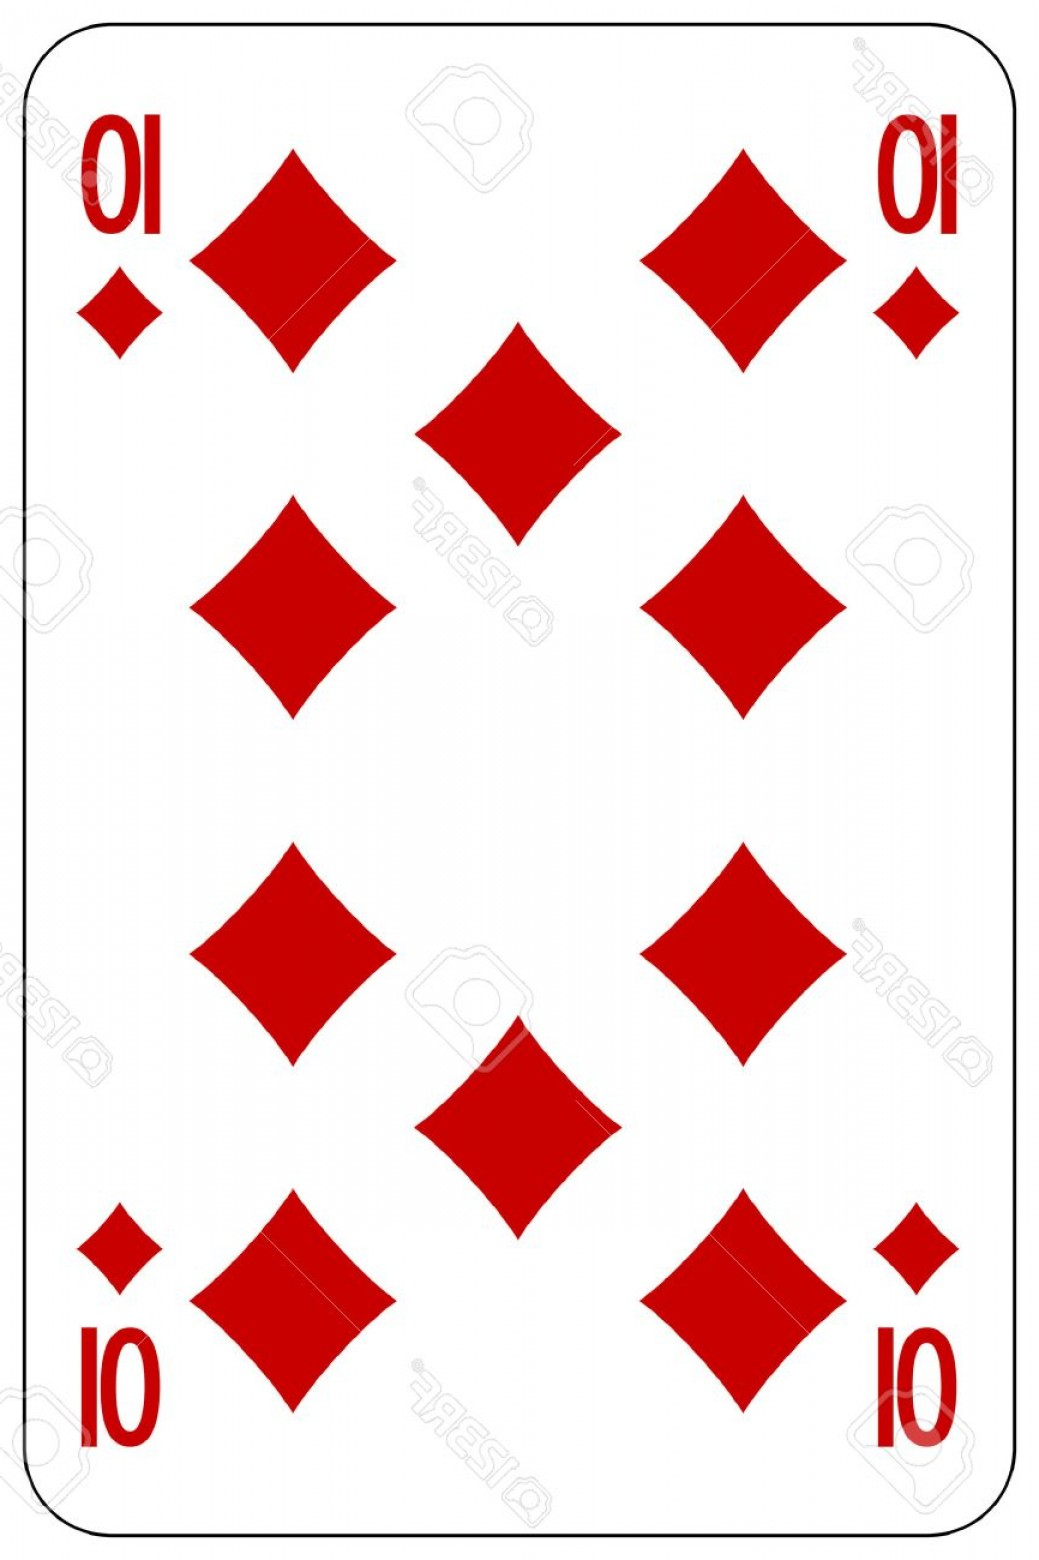 10 Playing Card Vector: Photostock Vector Poker Playing Card Diamond